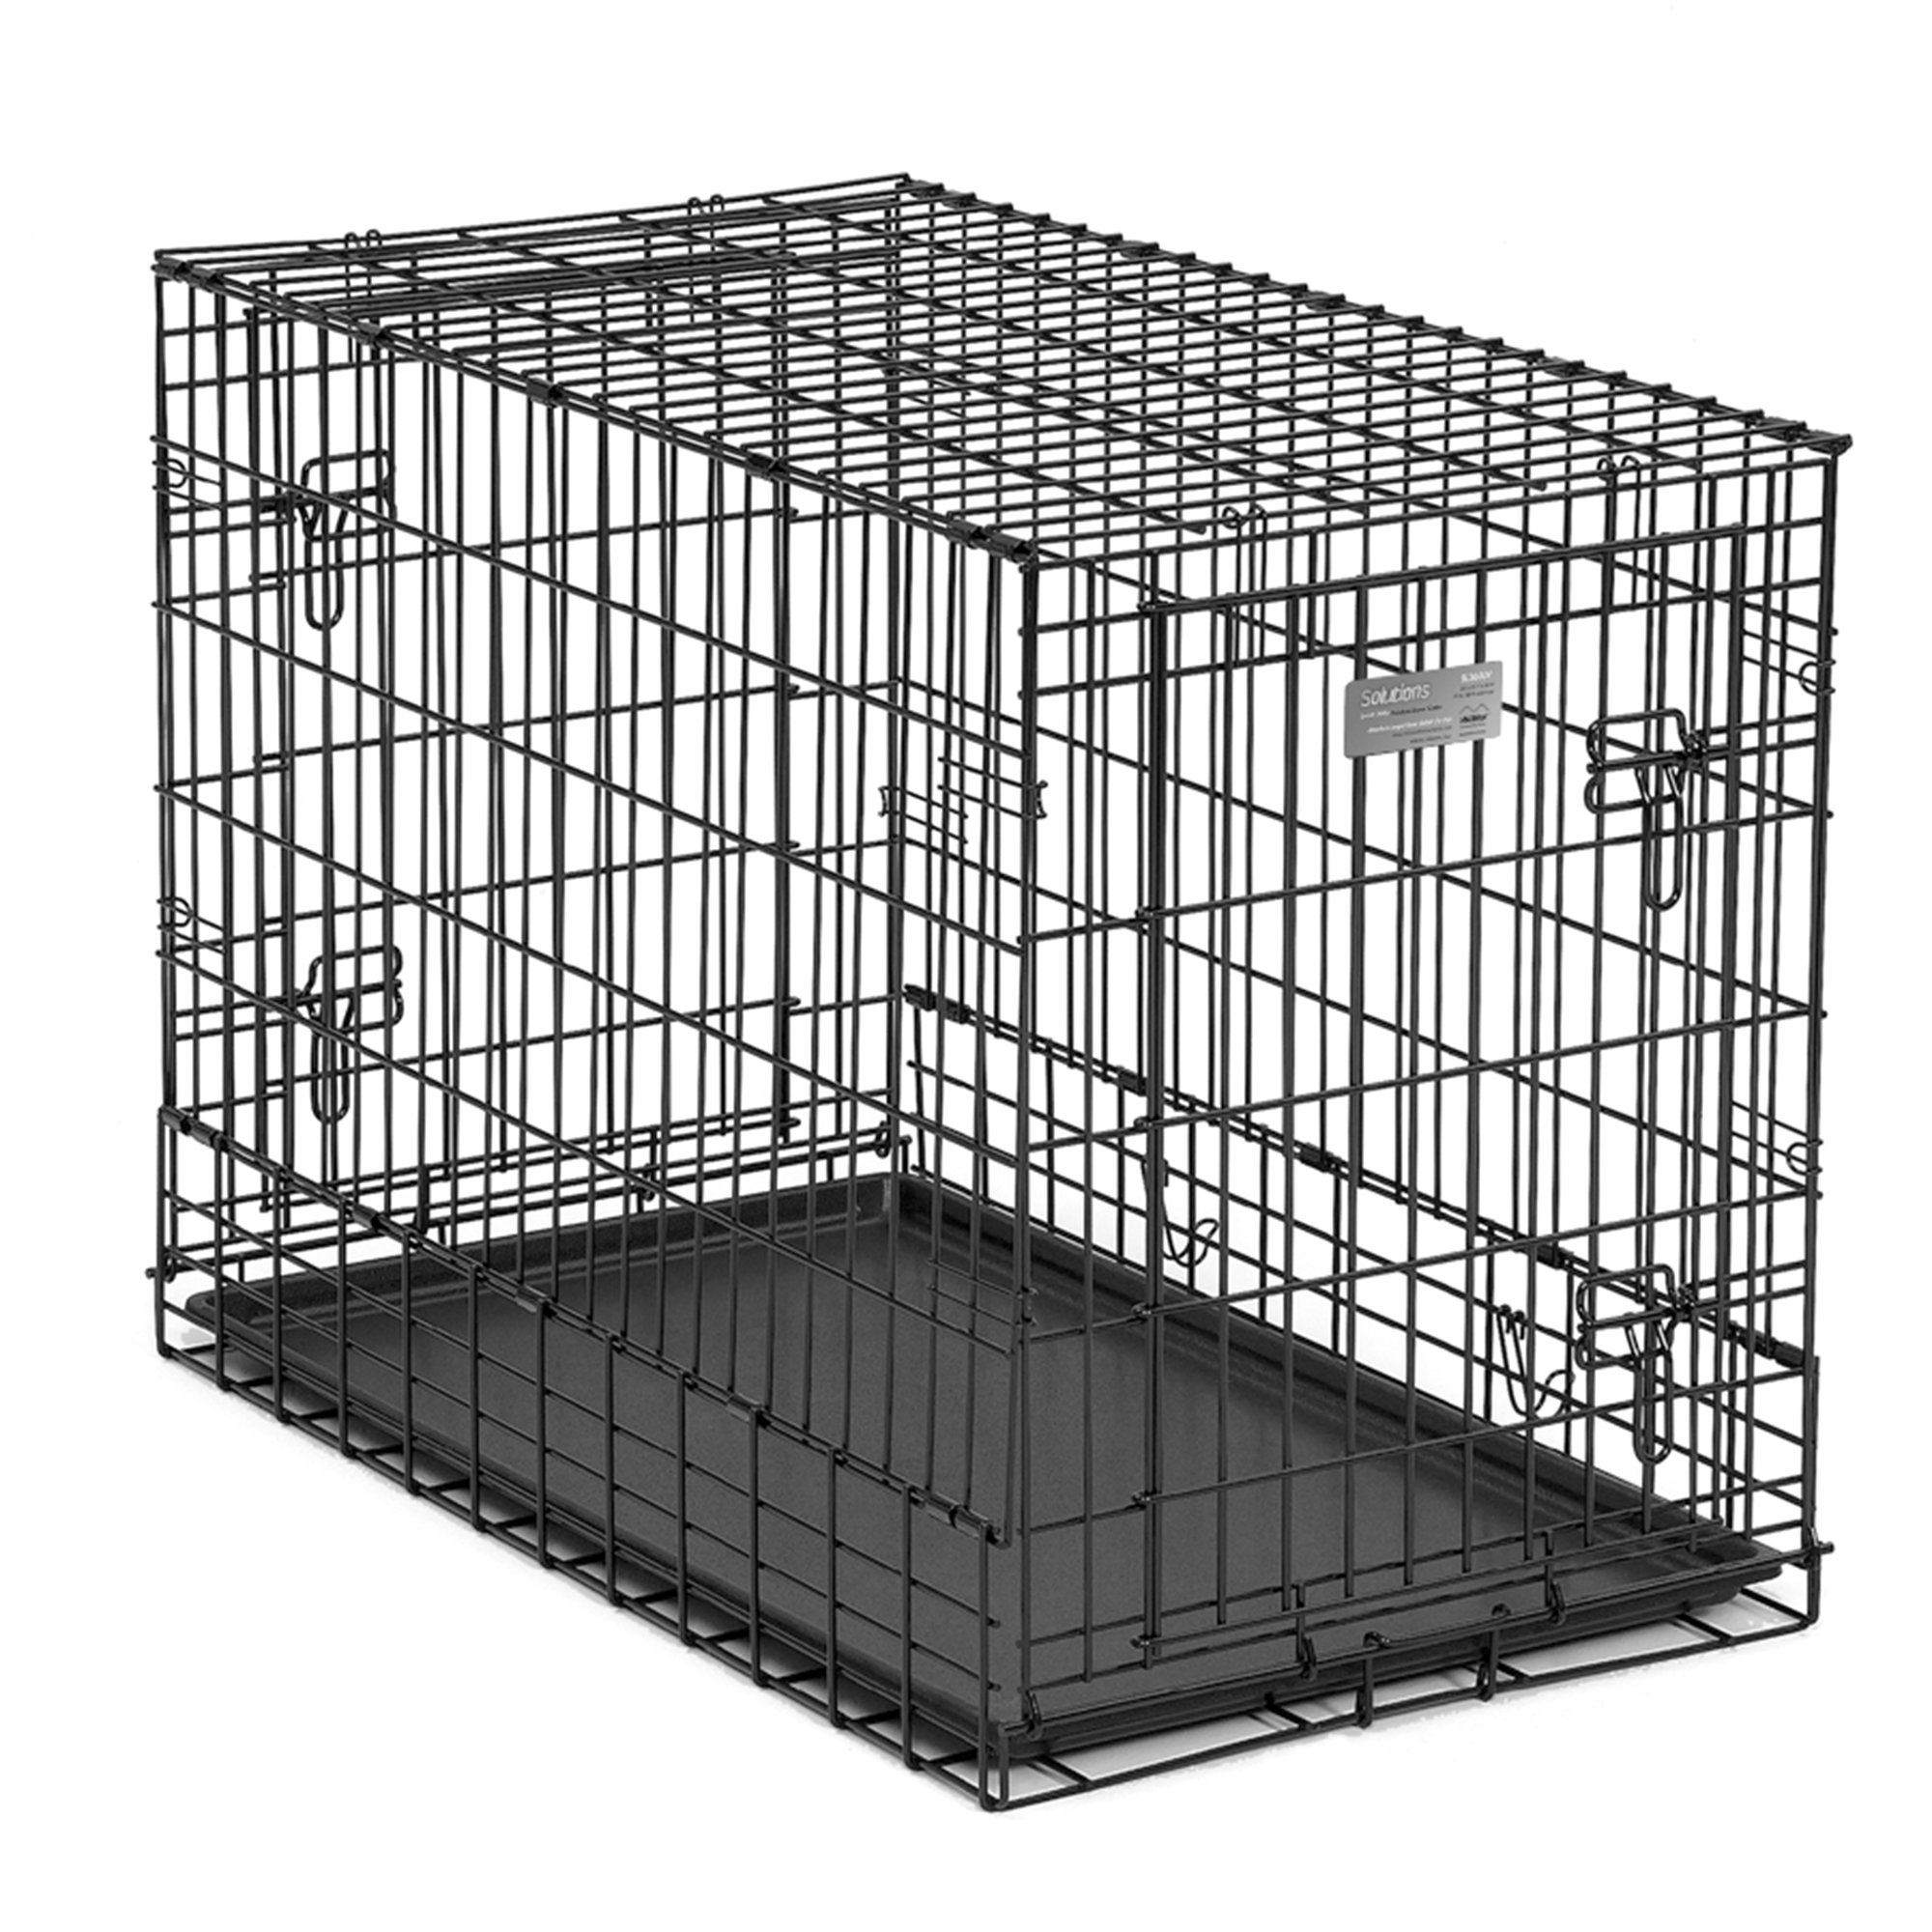 midwest solution series sidebyside double door suv dog crates - Midwest Crates